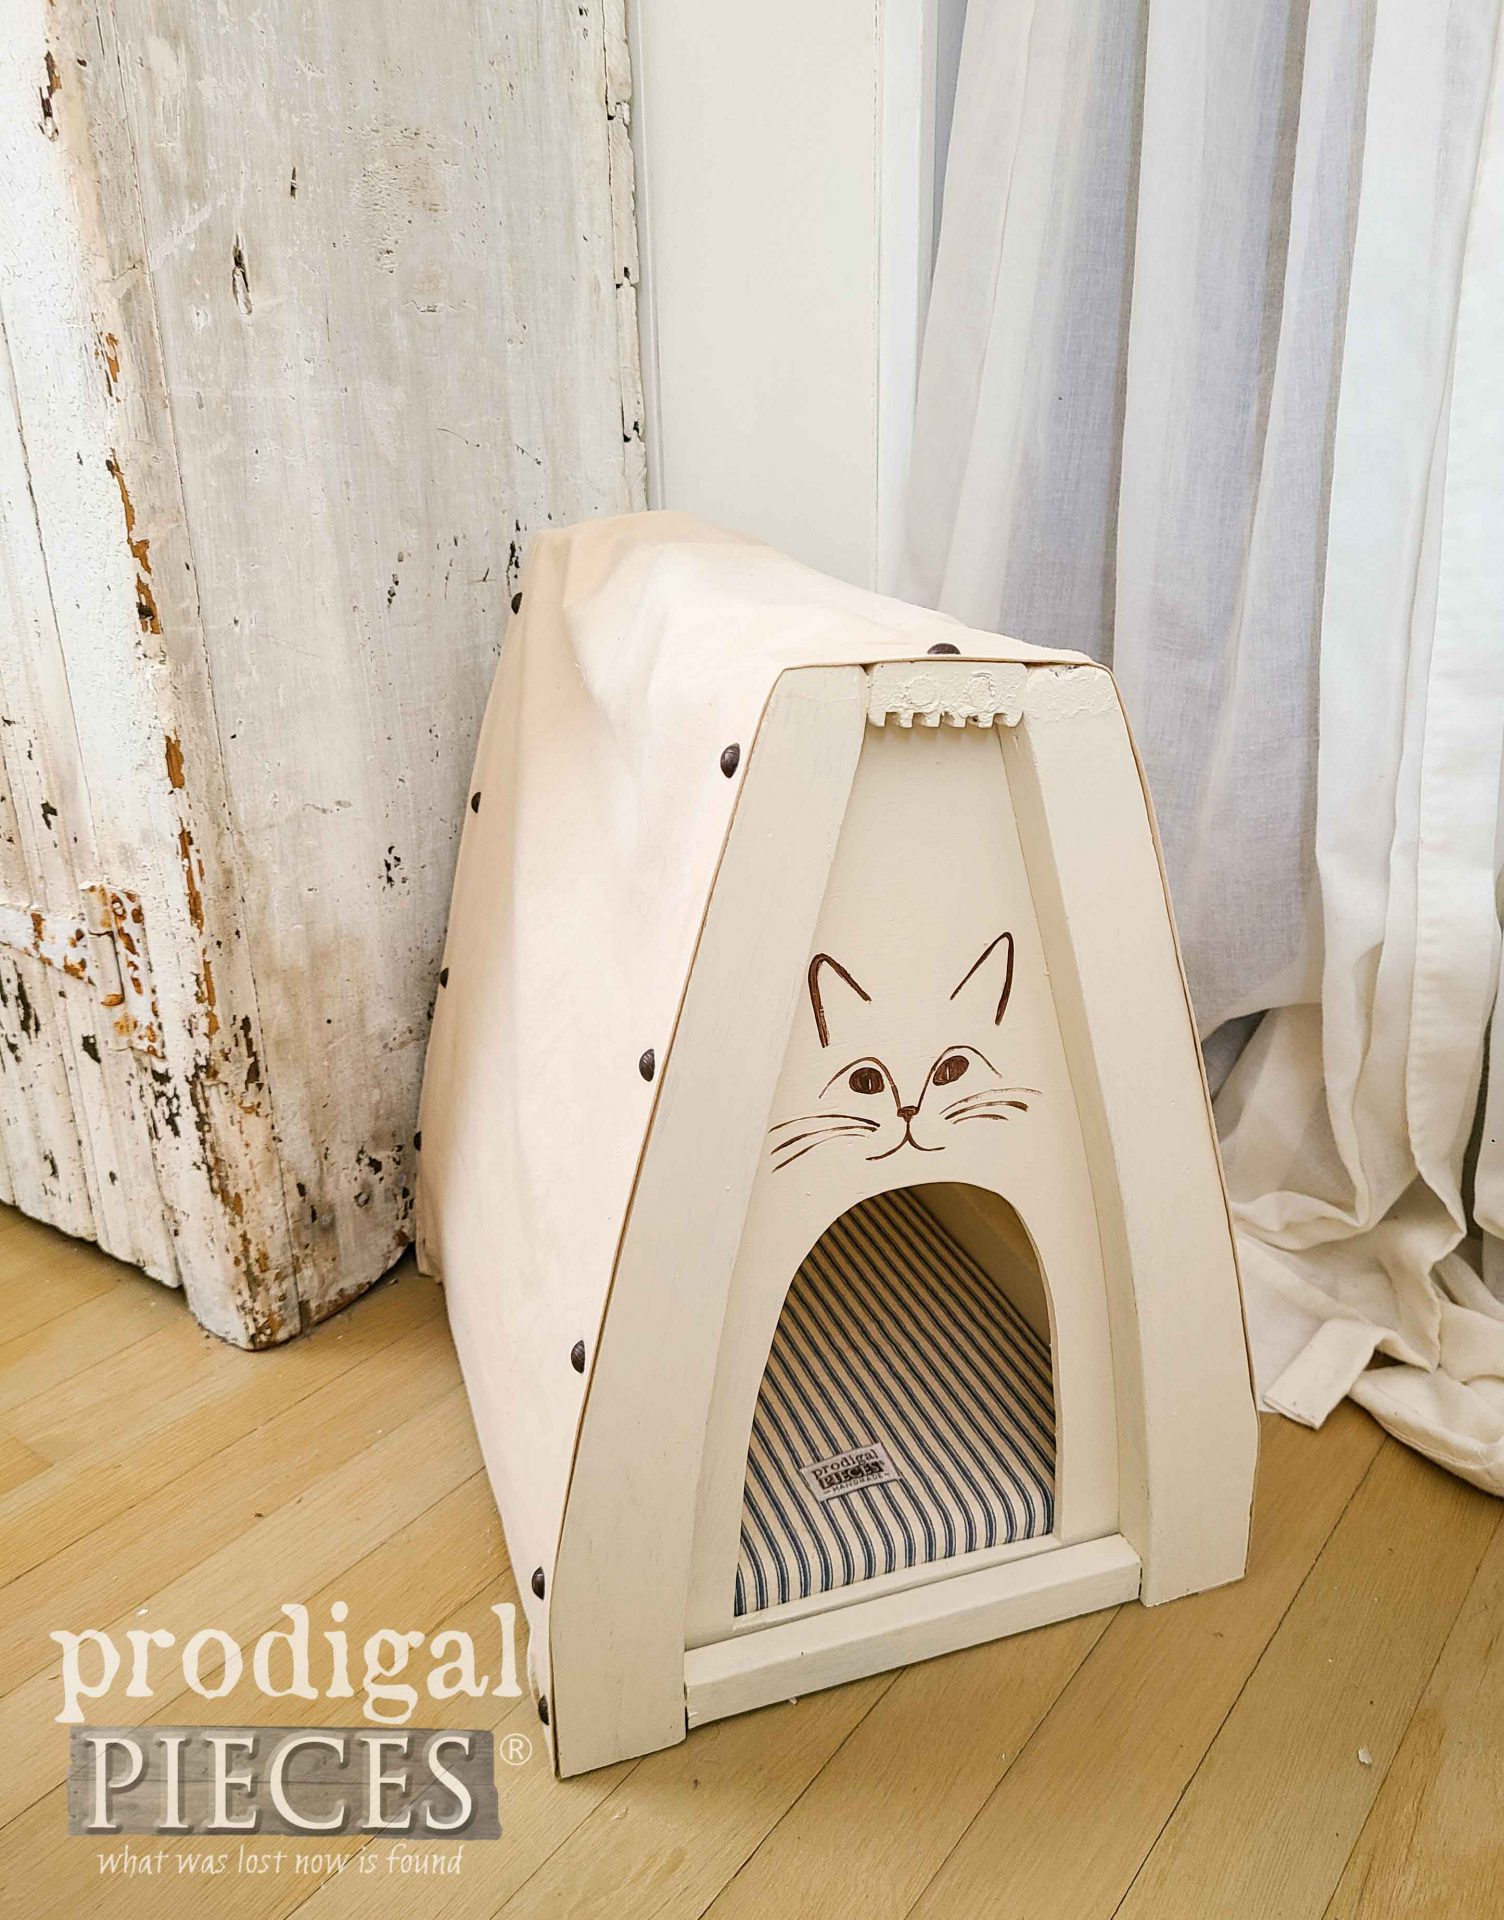 Farmhouse Style Cat Cave Made Out of Upcycled Chair Parts by Larissa of Prodigal Pieces with Ticking Stripe Mattress | prodigalpieces.com #prodigalpieces #diy #farmhouse